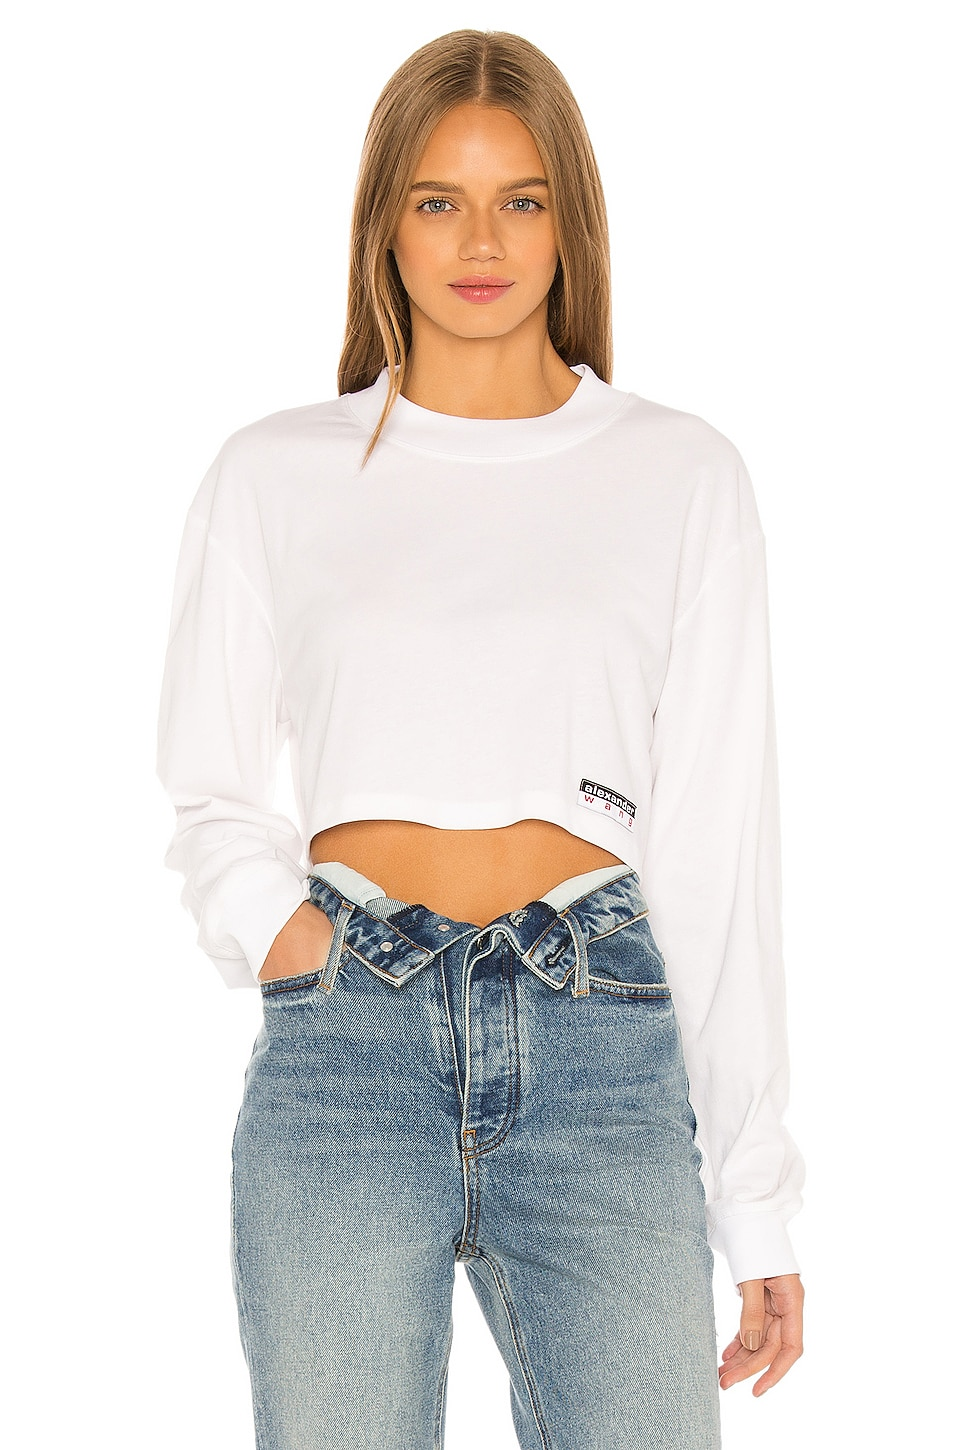 T by Alexander Wang Wash & Go Cropped Top in White